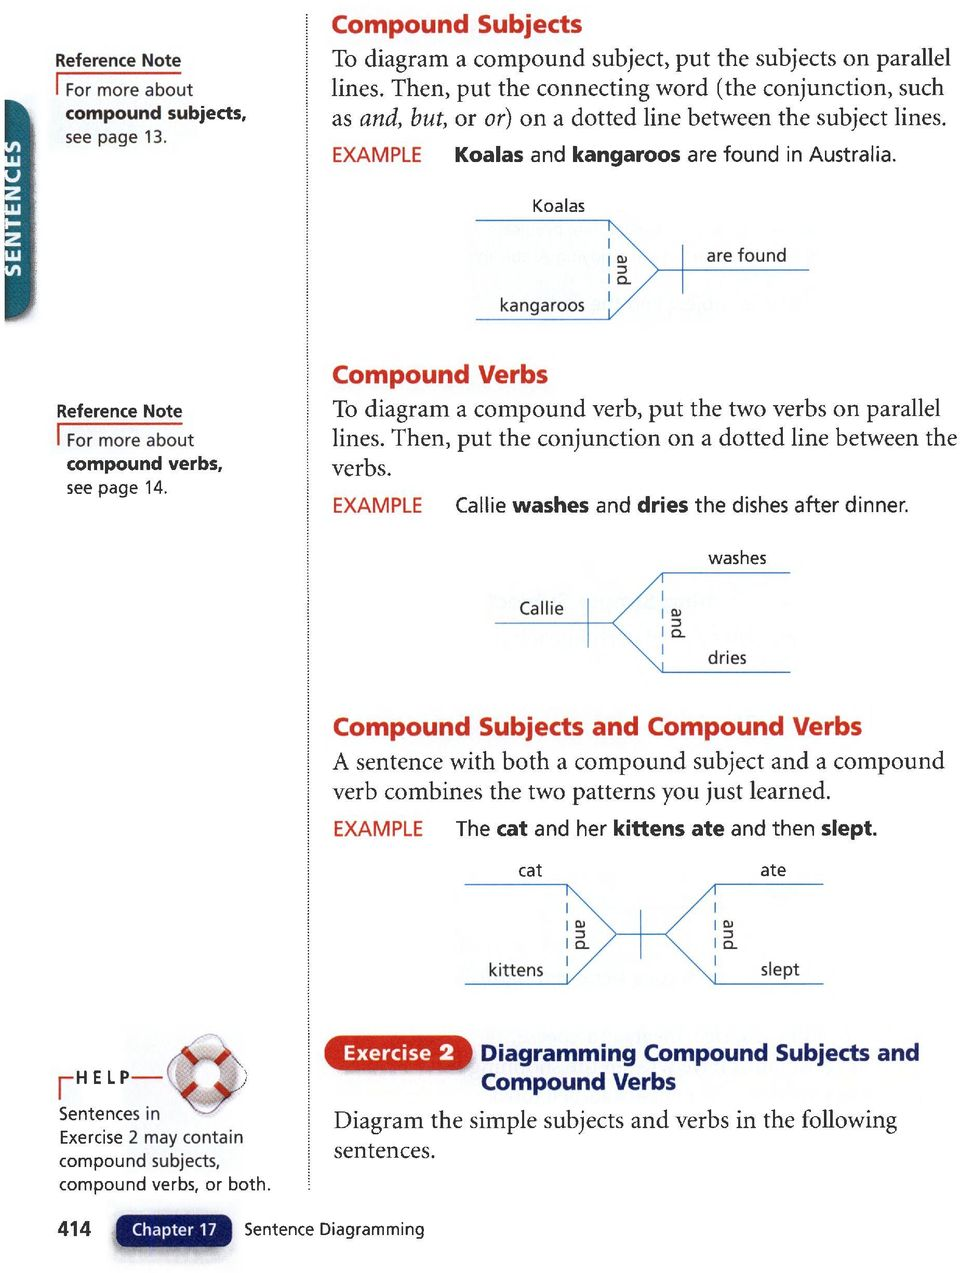 Compound Verb Diagram Schematic Diagrams Diagramming Linking Verbs Sentence Pdf